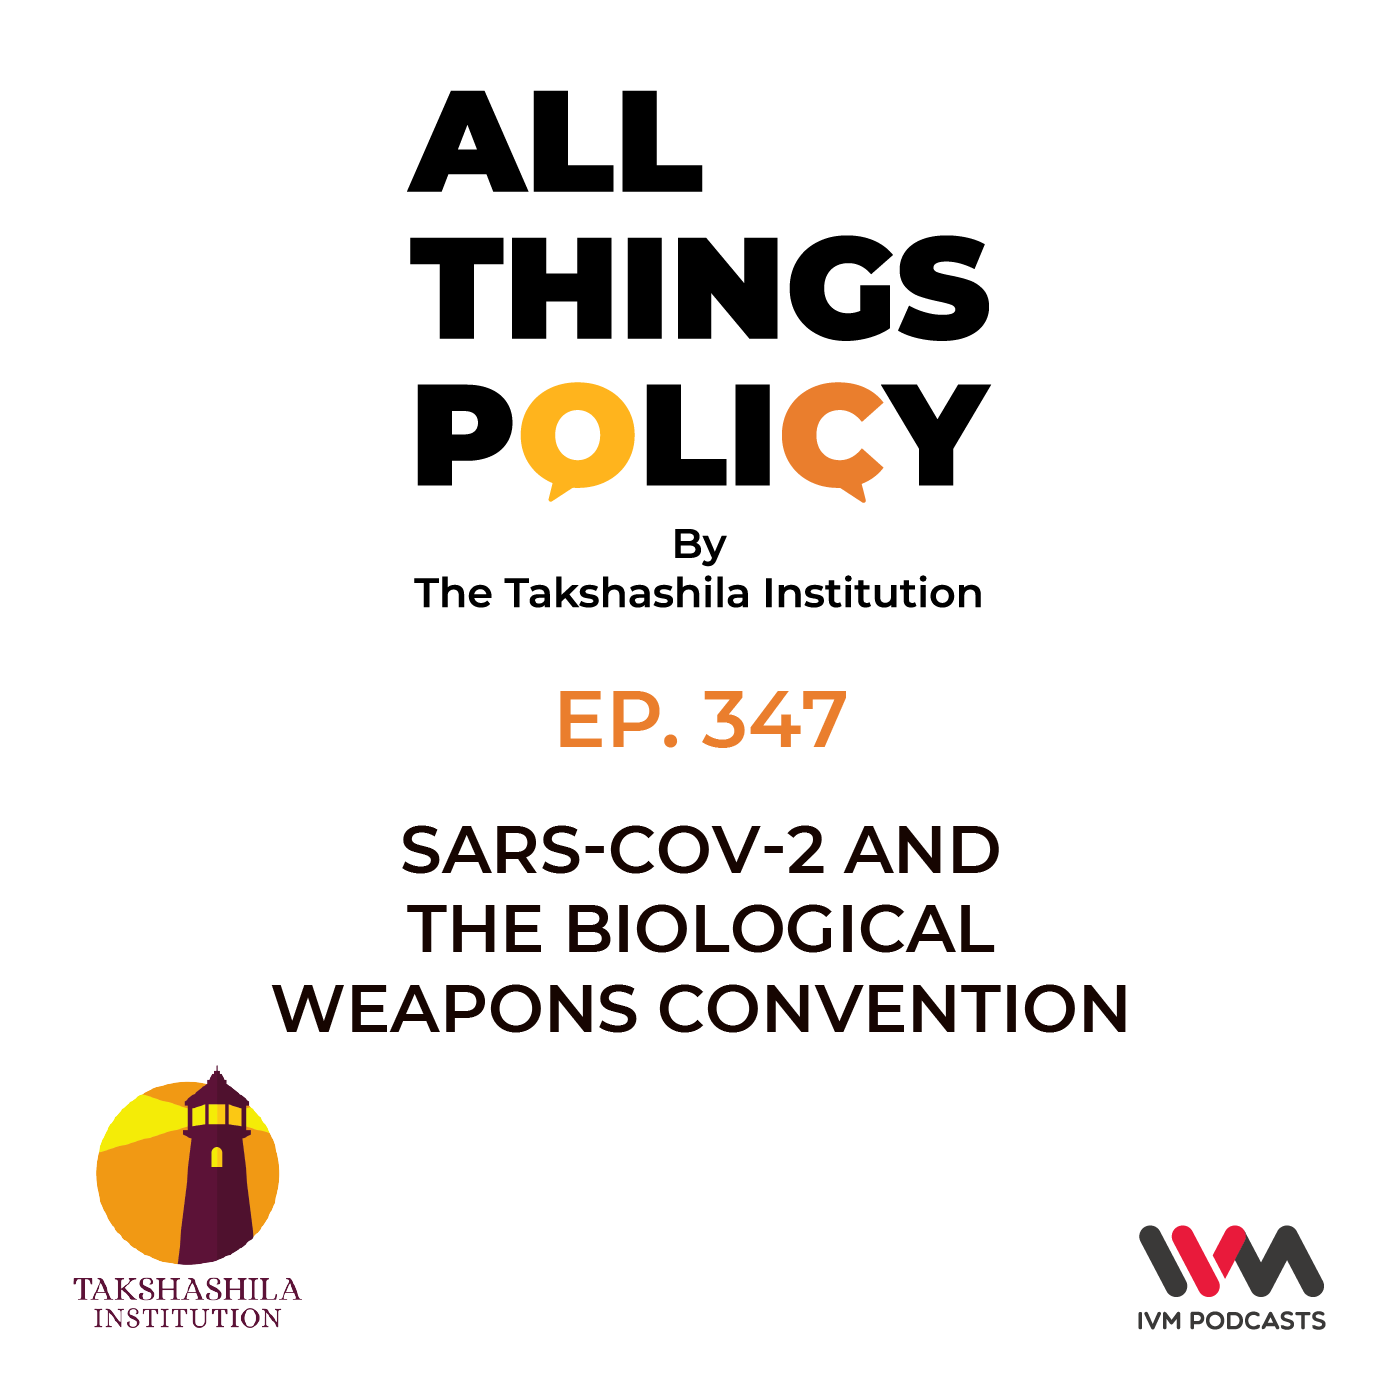 Ep. 347: SARS-CoV-2 and the Biological Weapons Convention